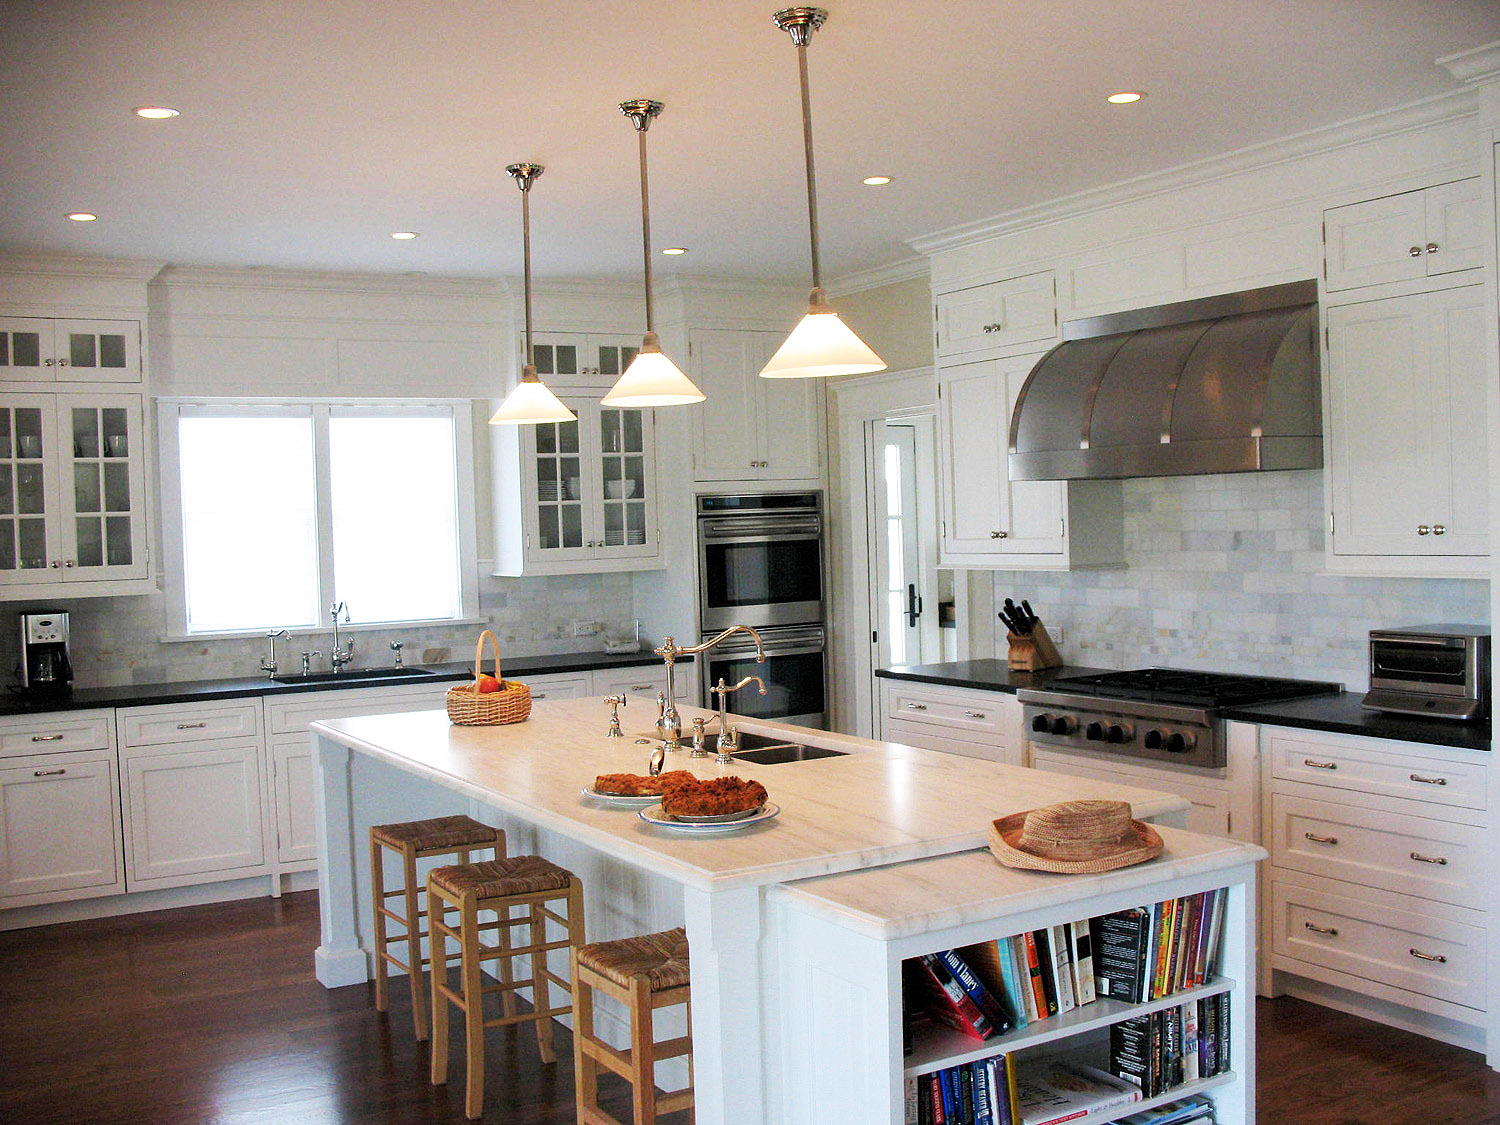 custom designers kitchen cabinets showrooms, bath cabinetry